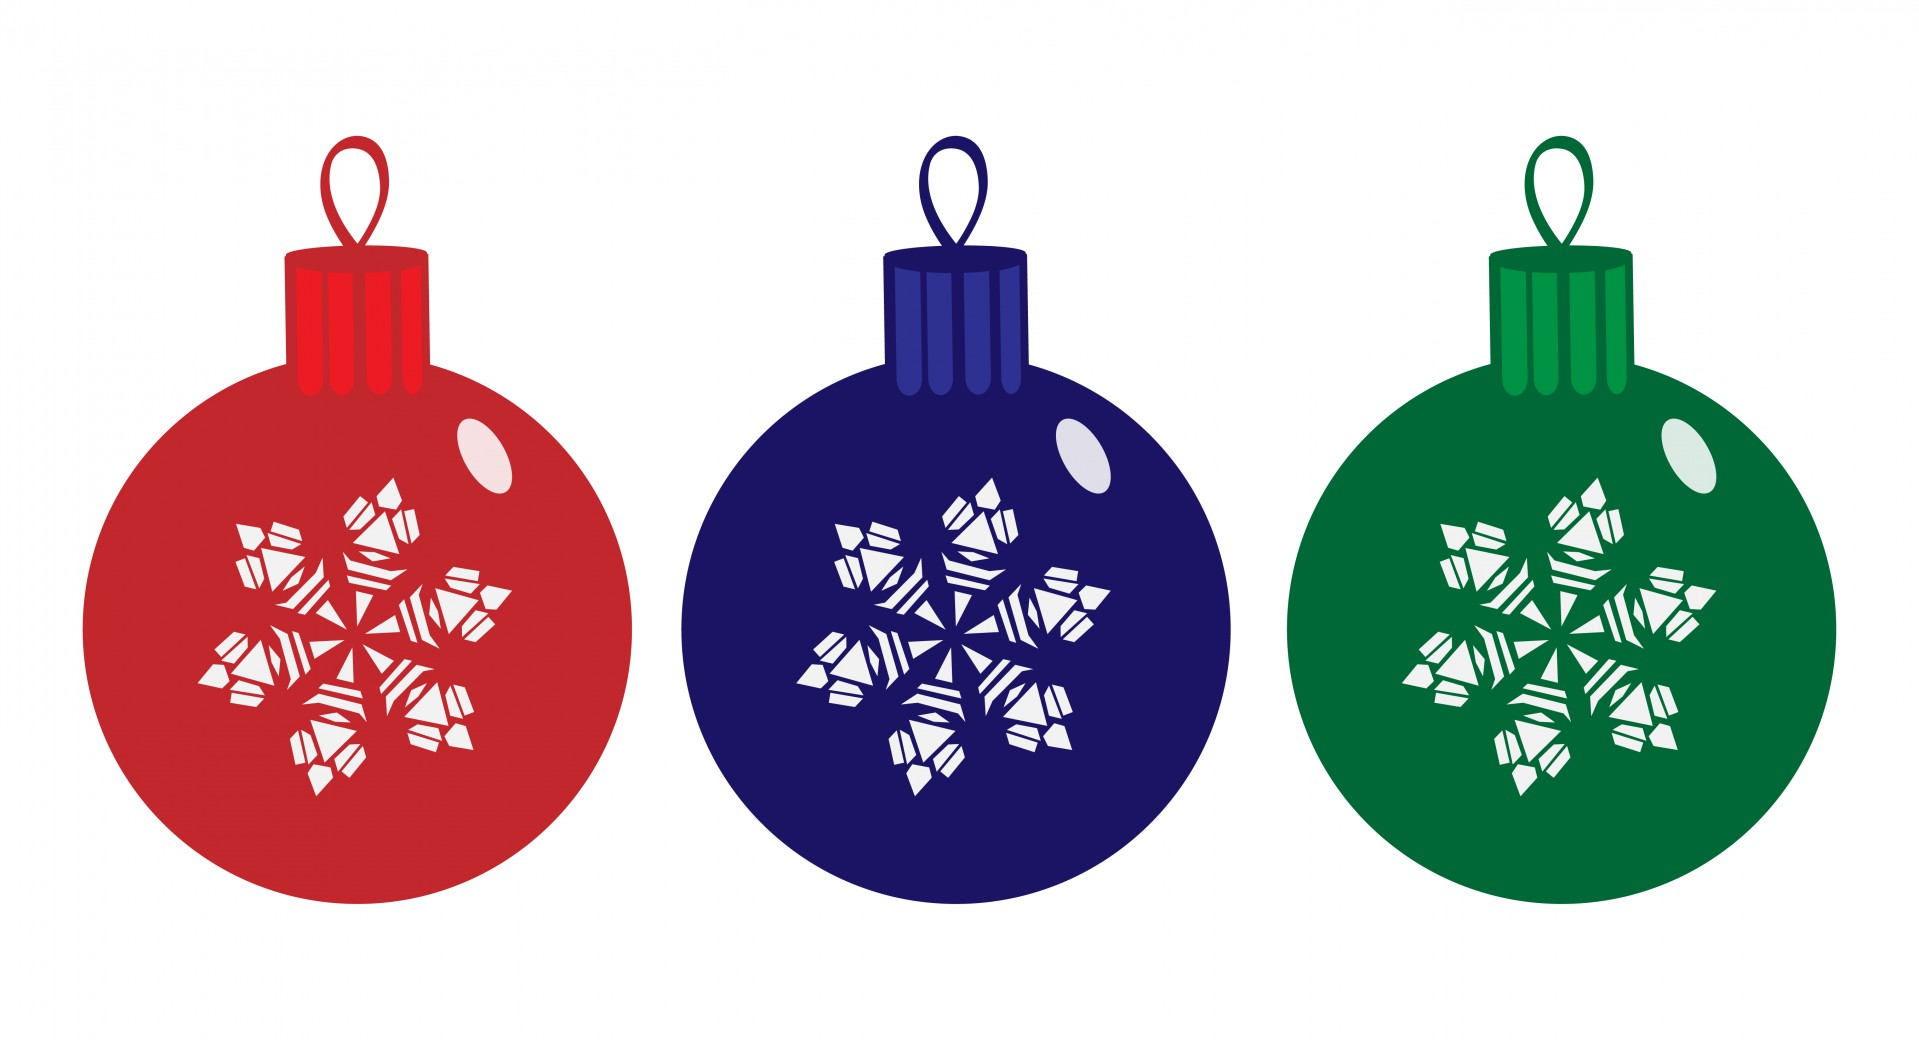 1919x1040 Christmas Baubles Clipart Free Stock Photo